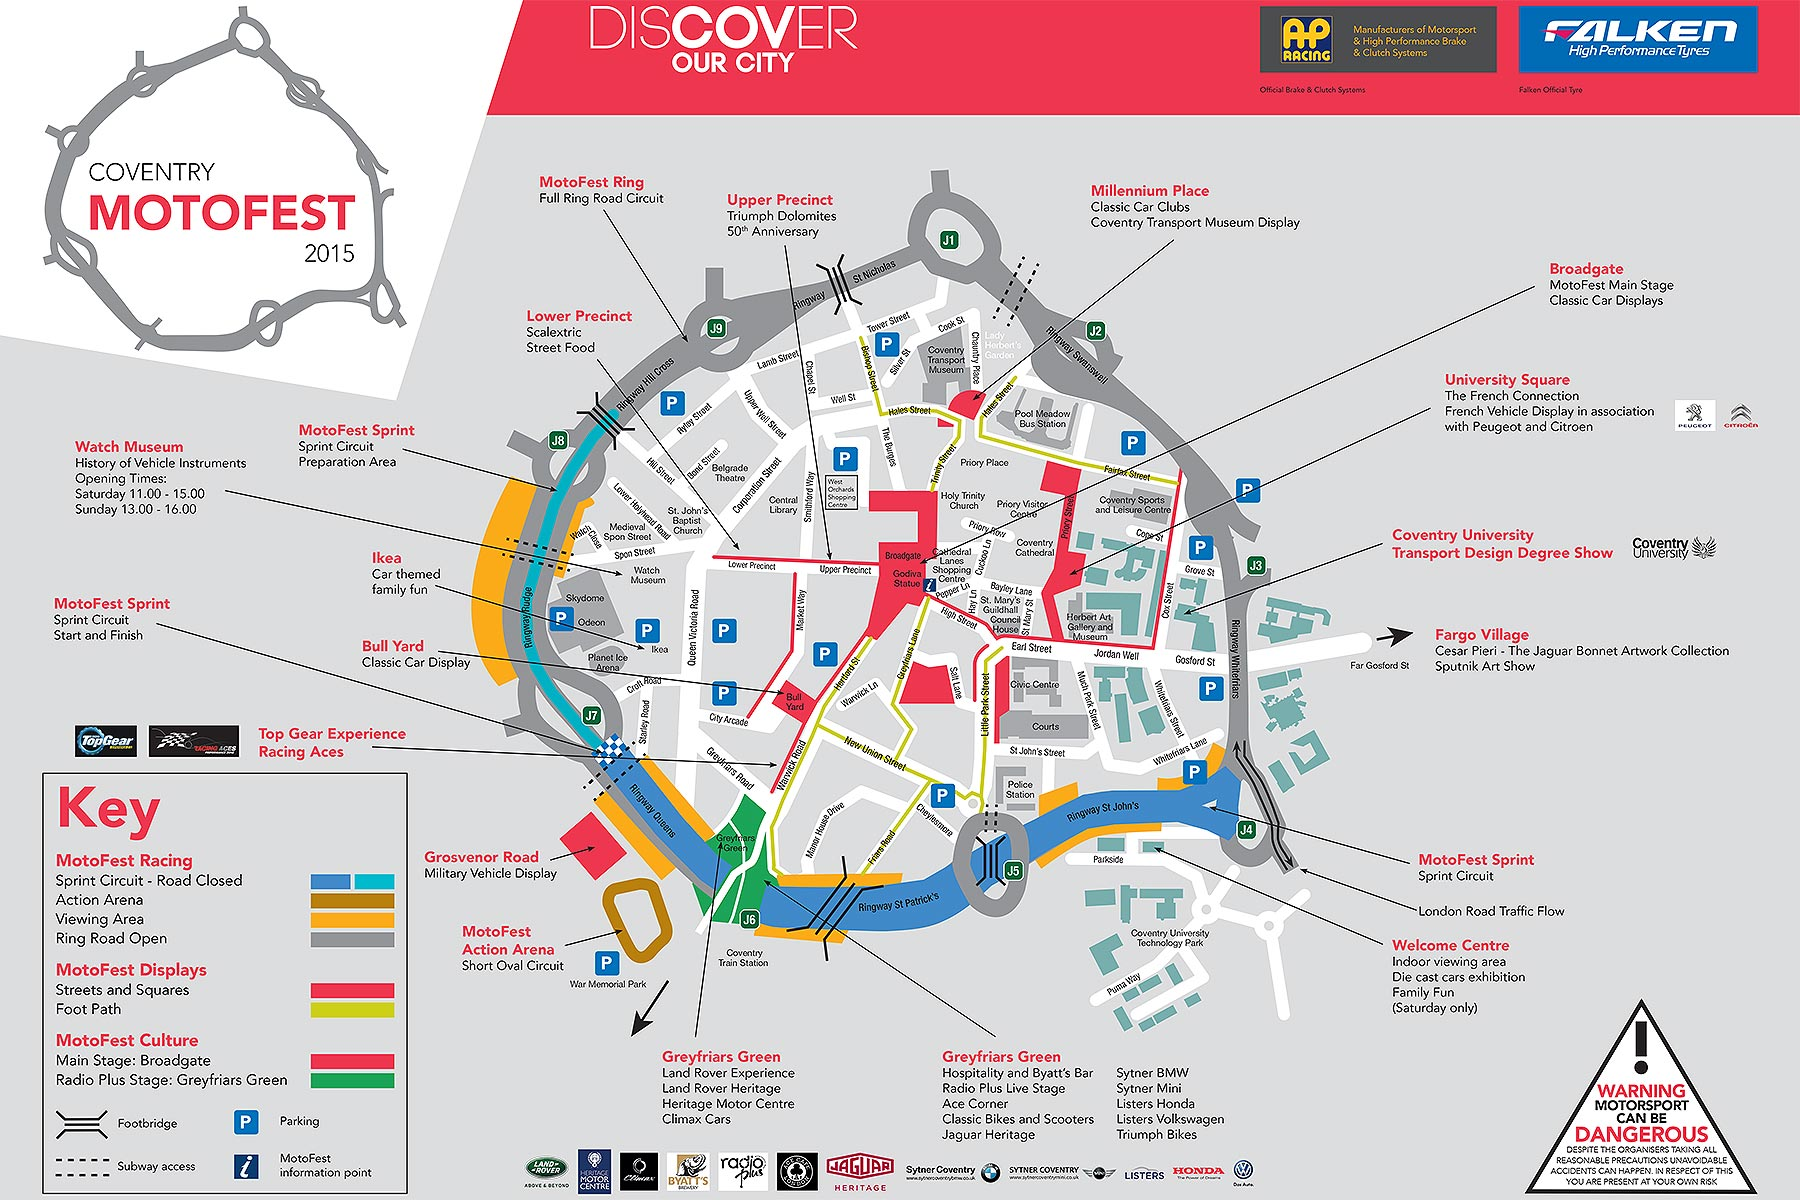 Coventry MotoFest 2015 map